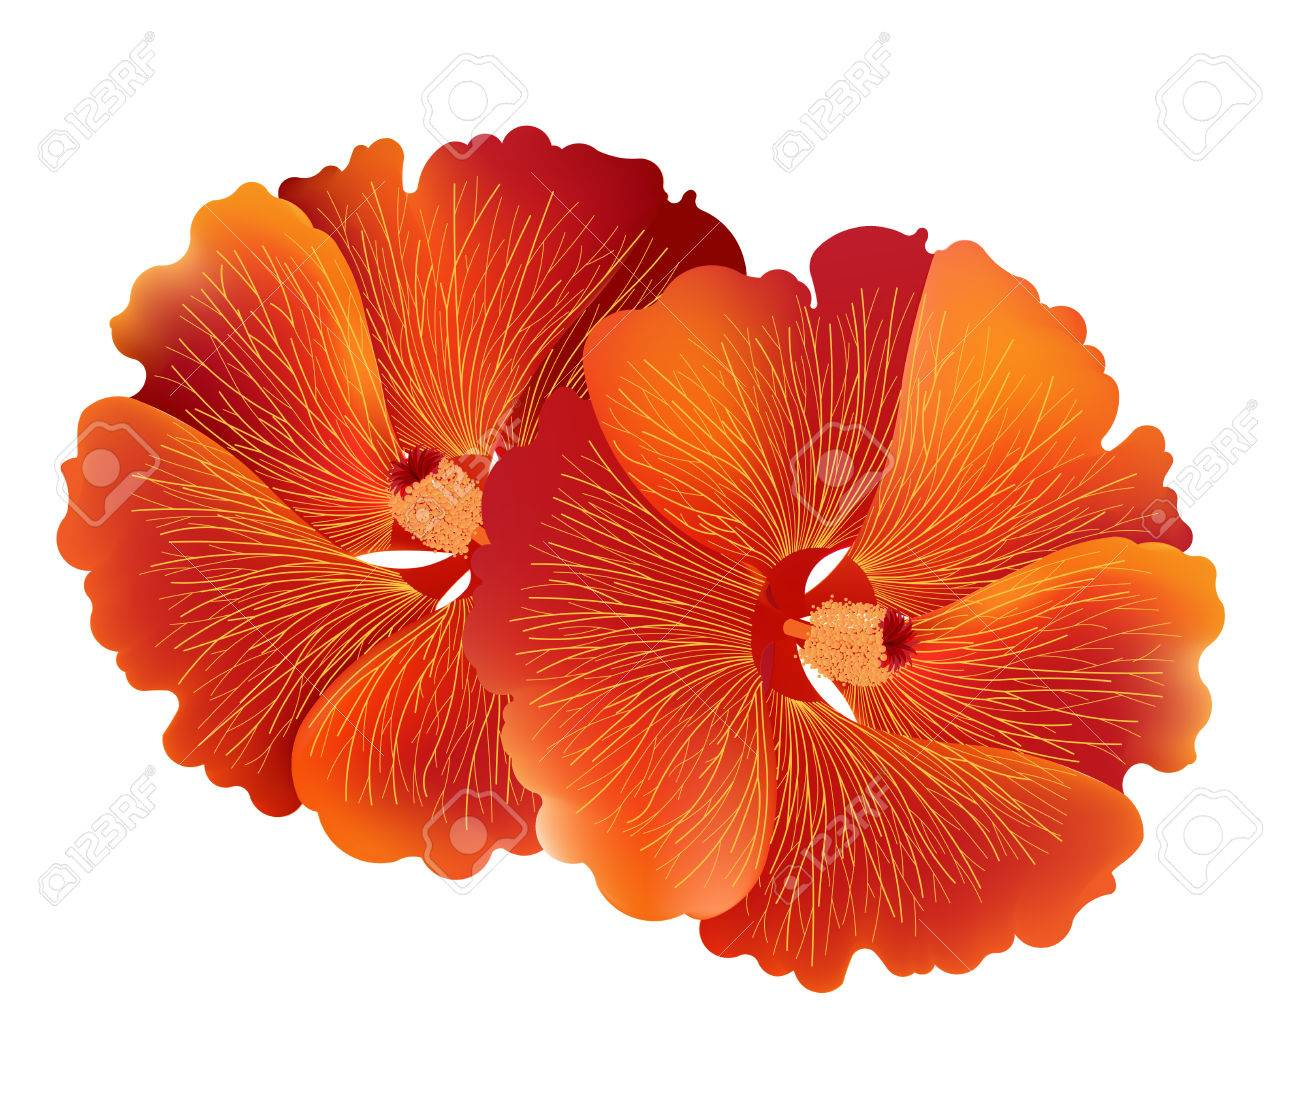 Illustration Vector Of Red Hibiscus Flower Or Common Name Is